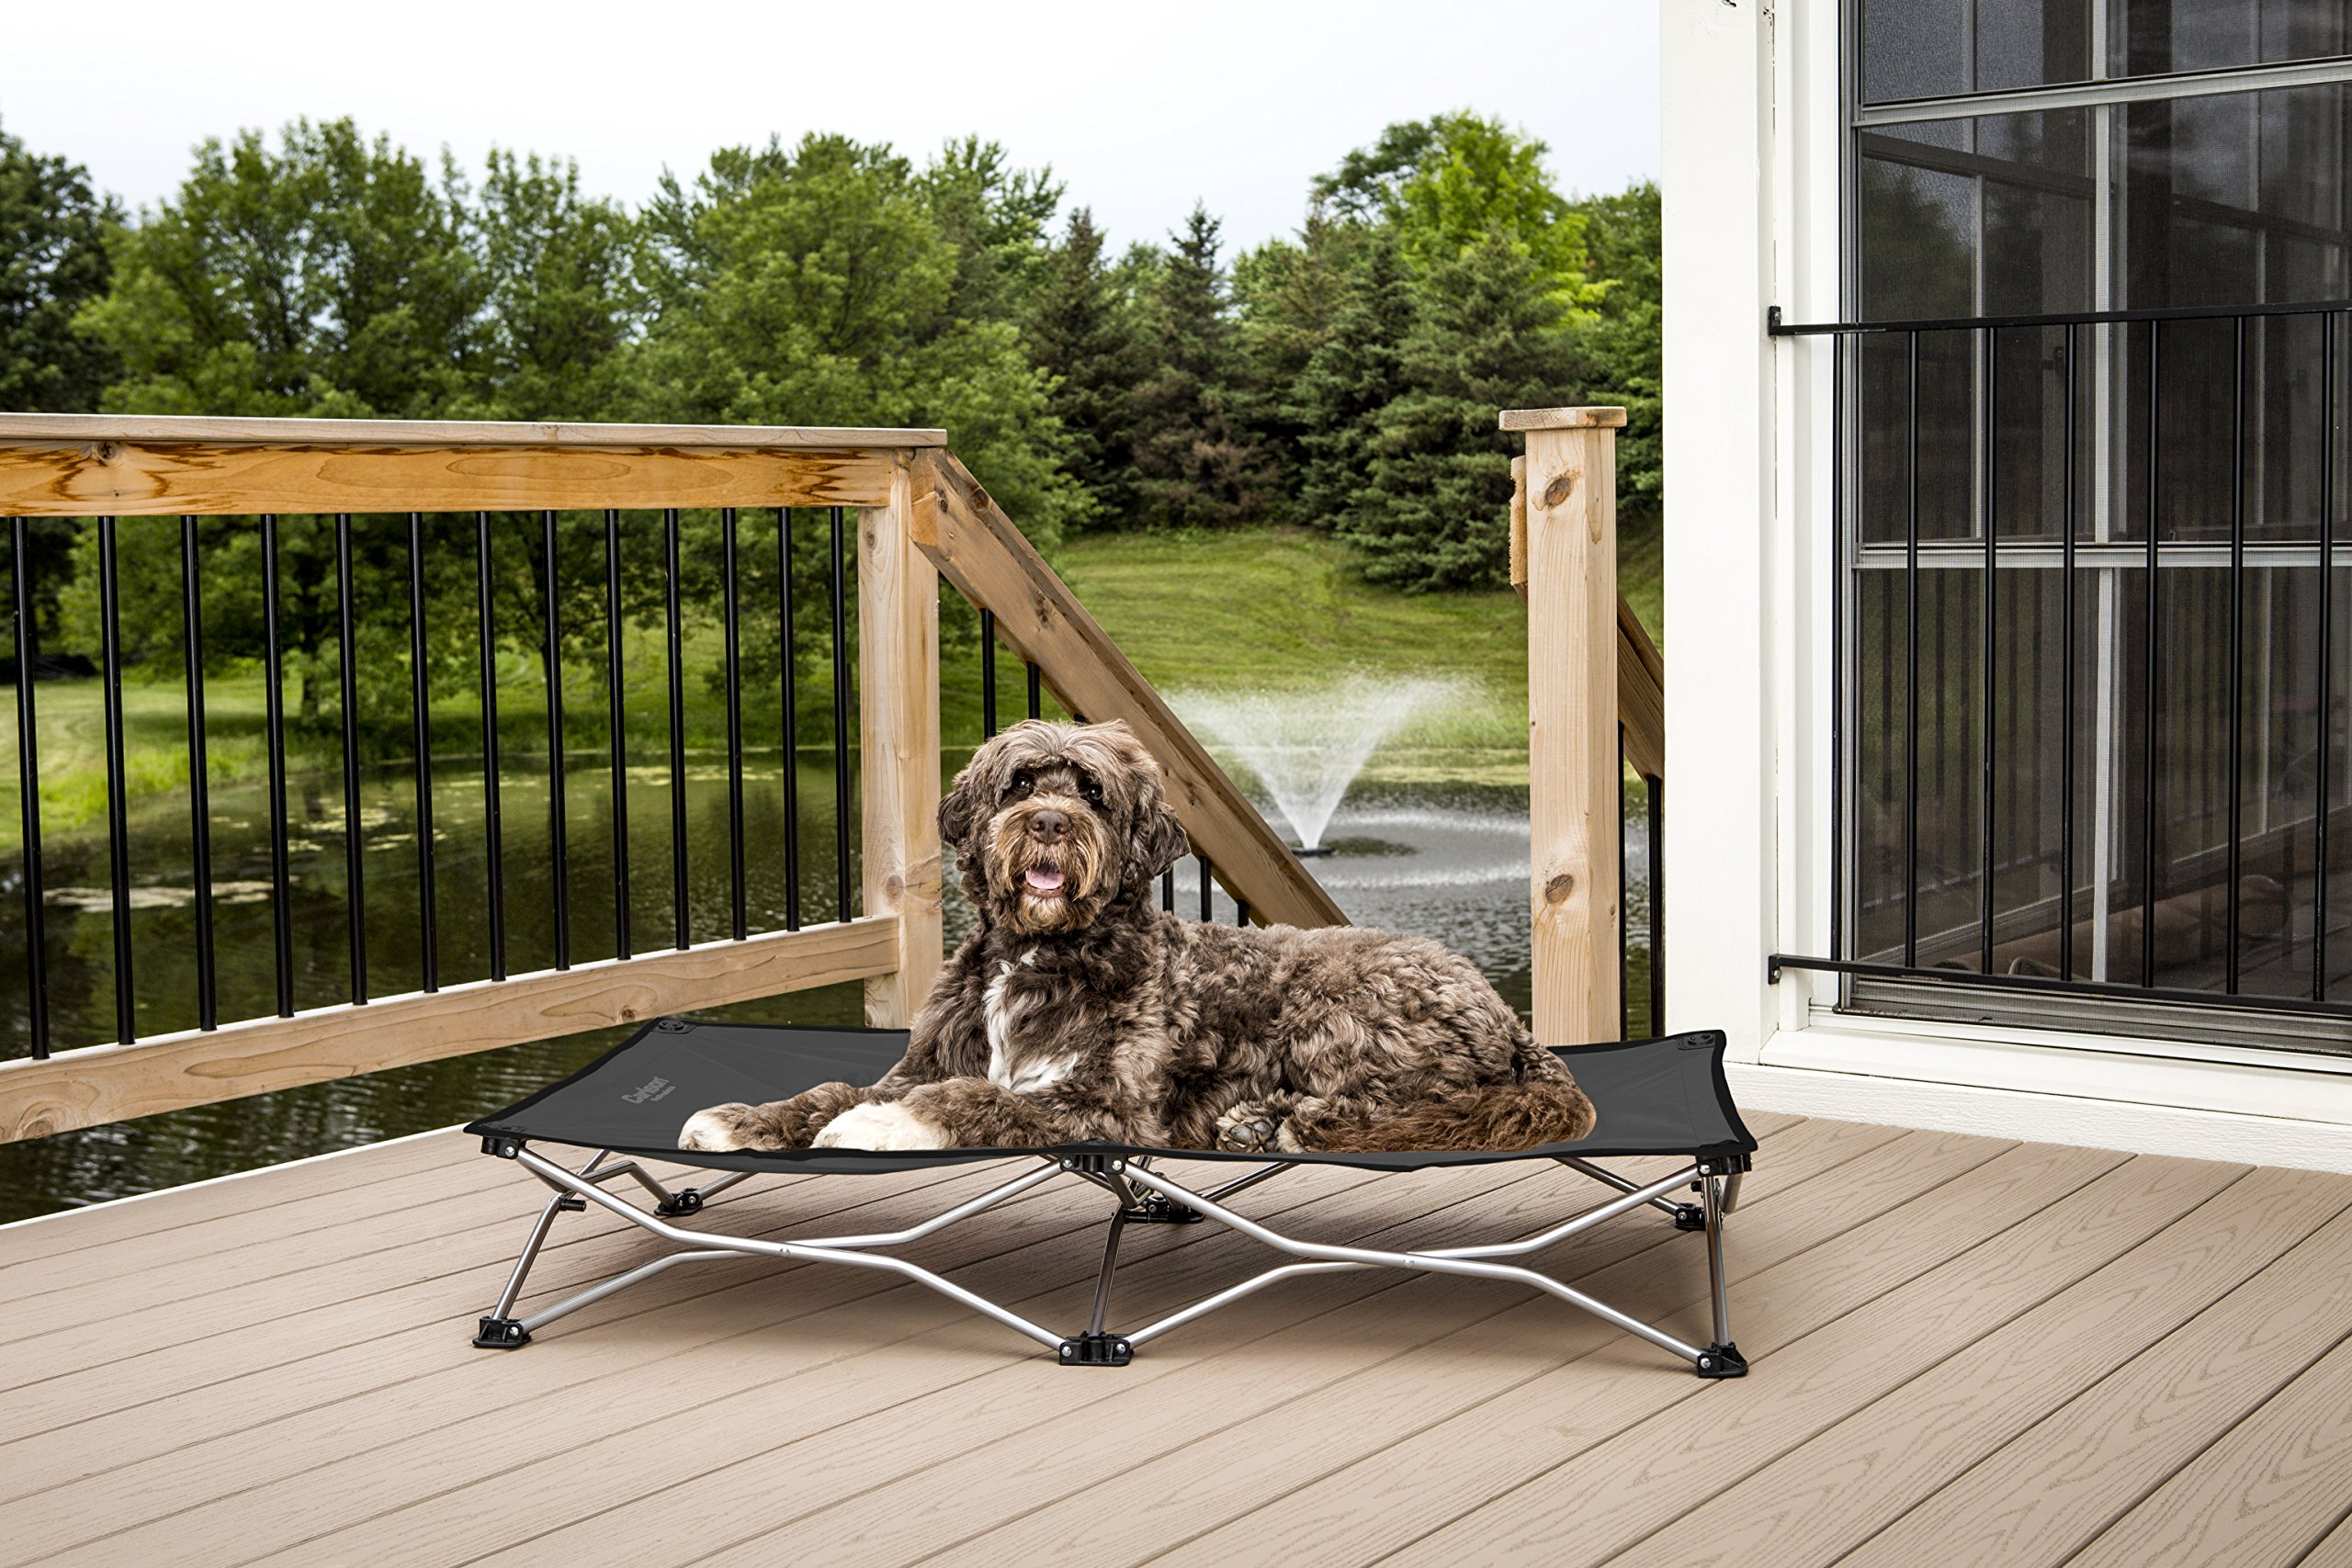 Carlson Pet Products 8025 Elevated Folding Pet Bed 46'' Long, Includes Travel Case, Gray